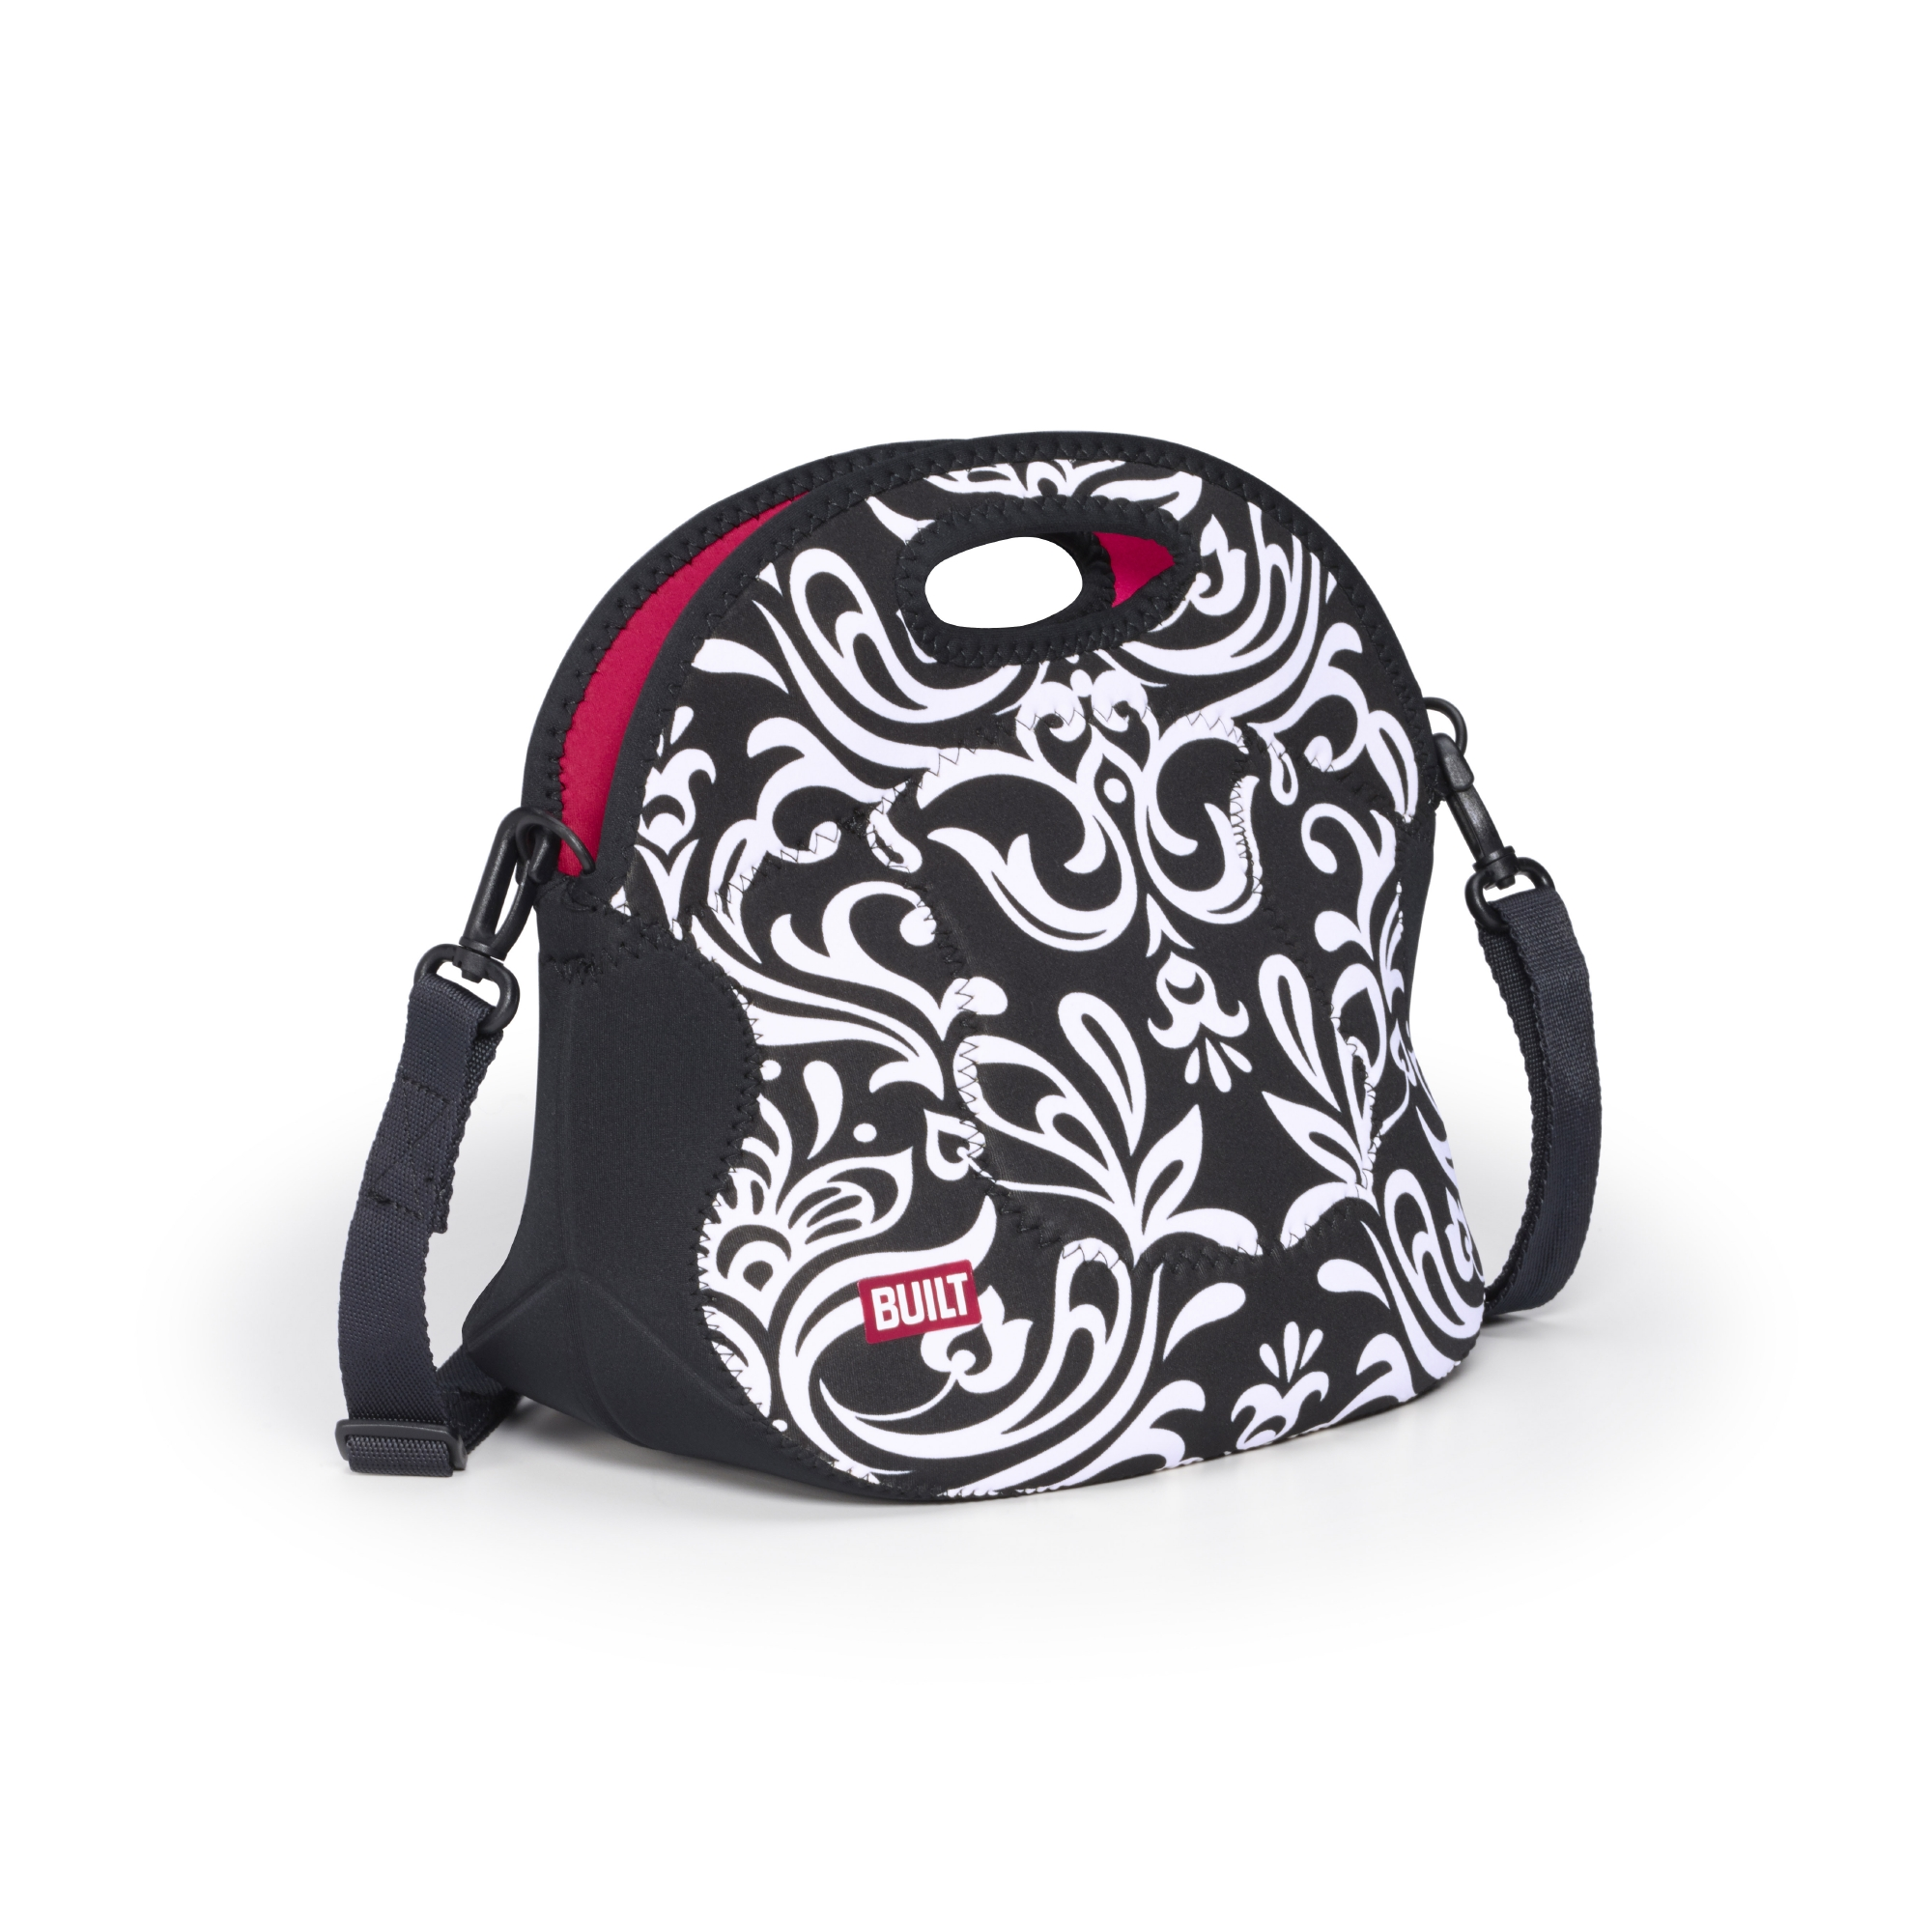 BUILT NY Black and White Damask Spicy Relish Lunch Tote